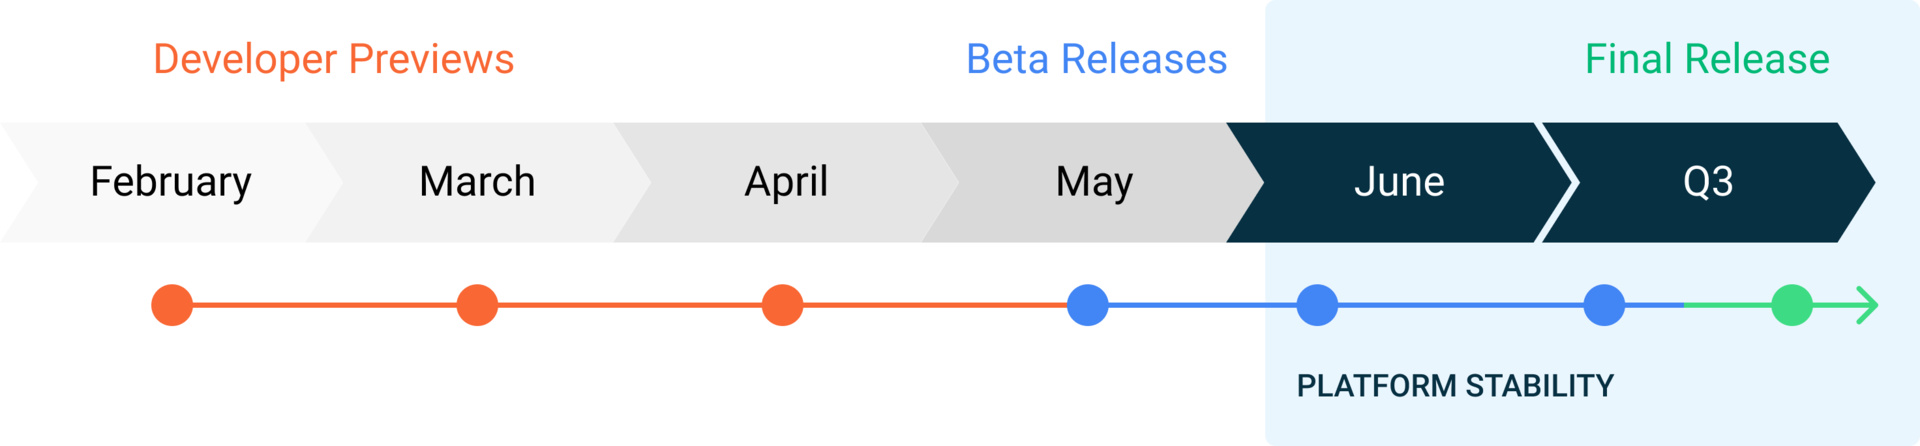 Android 11 Roadmap